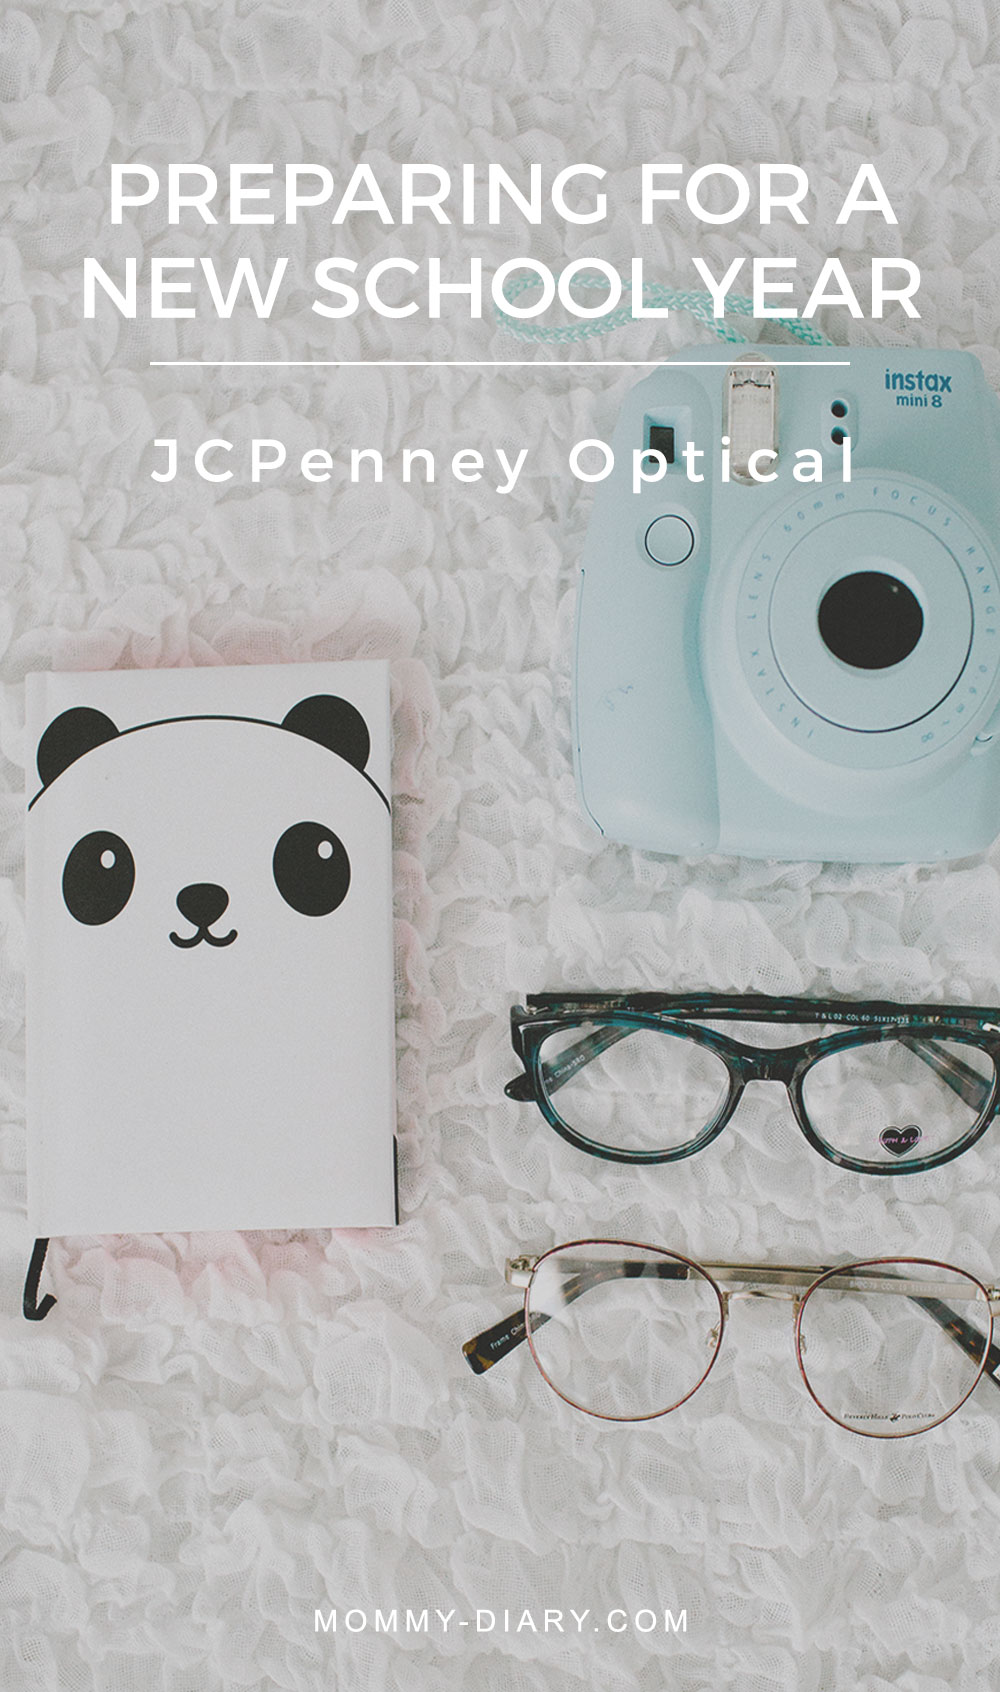 JCpenney-optical-pinterest